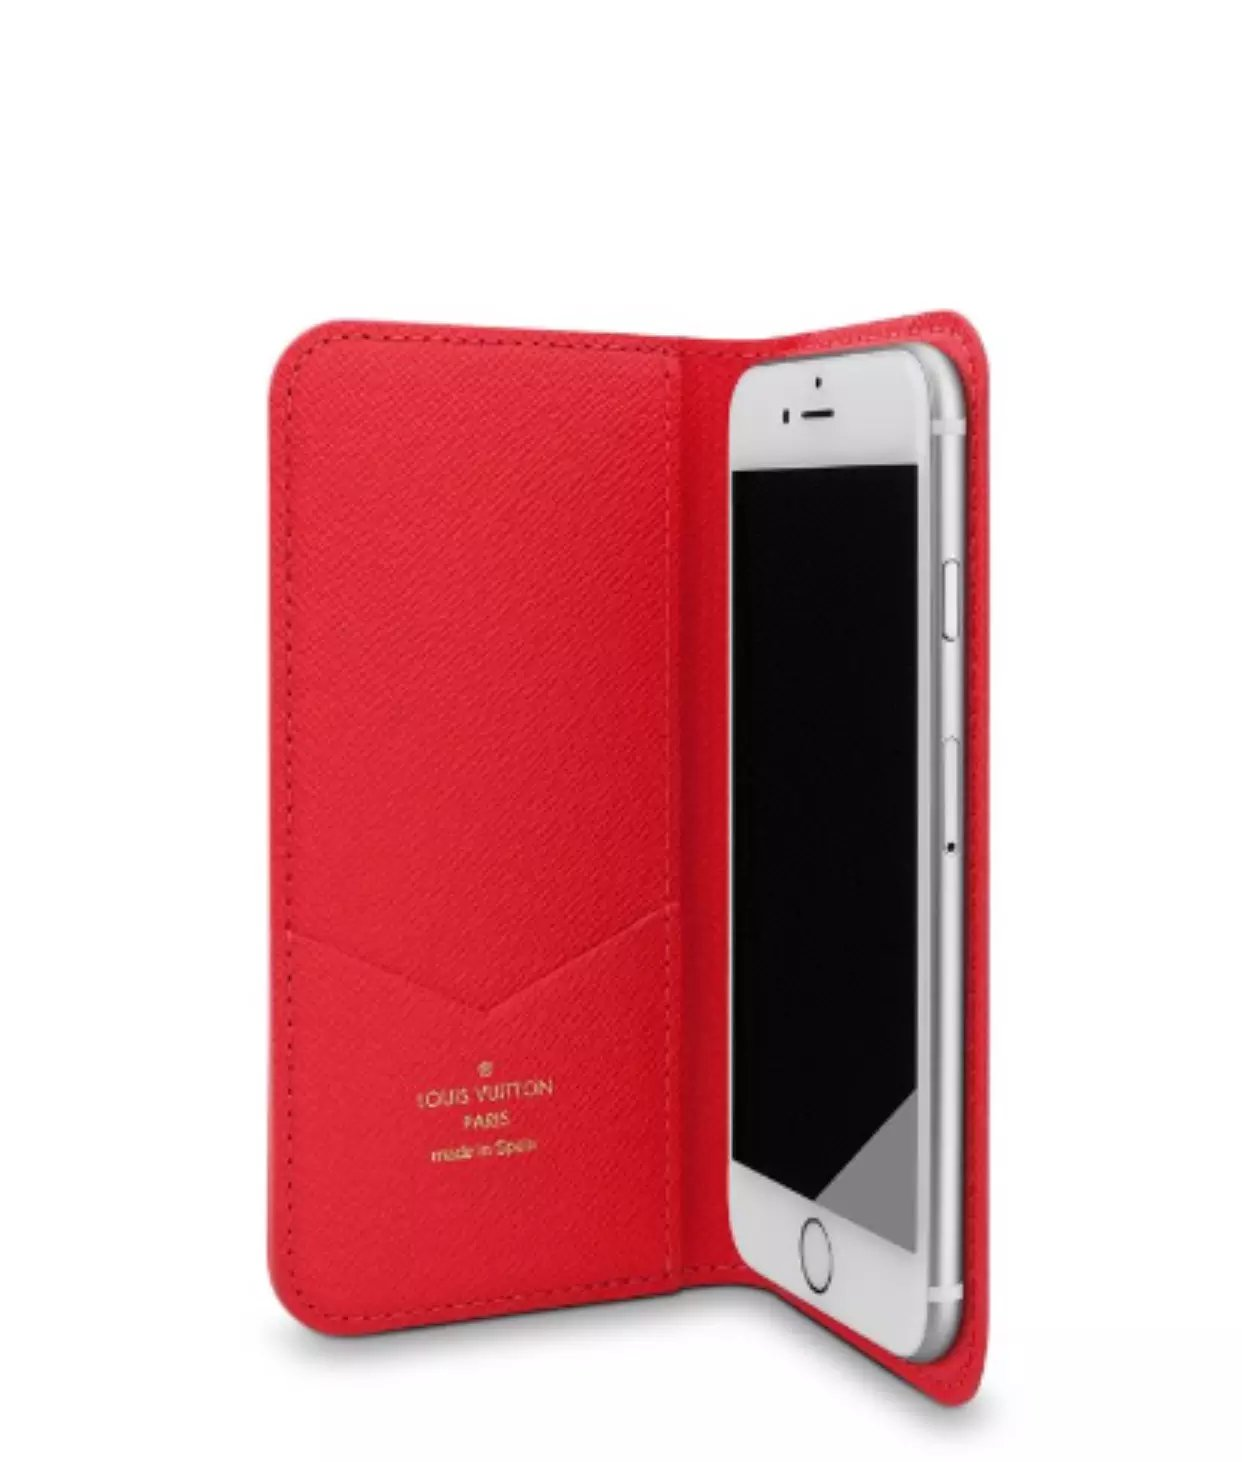 iphone 6s Plus leather cover best looking iphone 6s Plus case fashion iphone6s plus case top rated iphone 6 case apple case for iphone 6 cell phone cases for iphone 6s mens designer iphone 6 cases designer iphone 6 cases sale cover plus